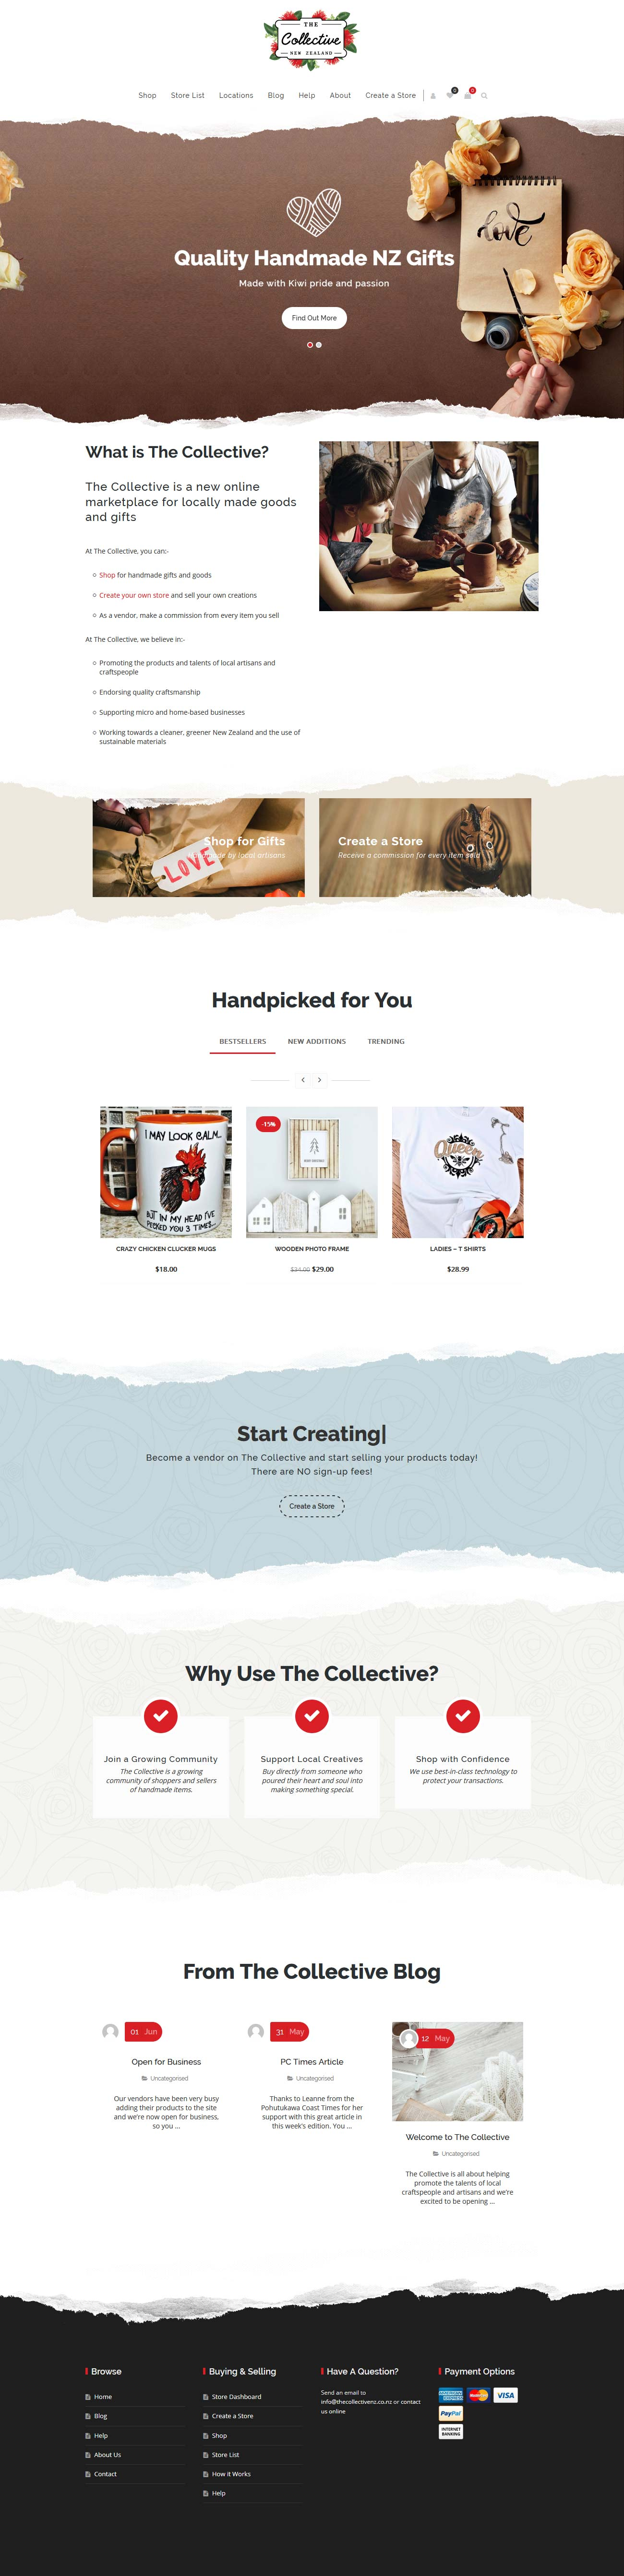 Website design for The Collective